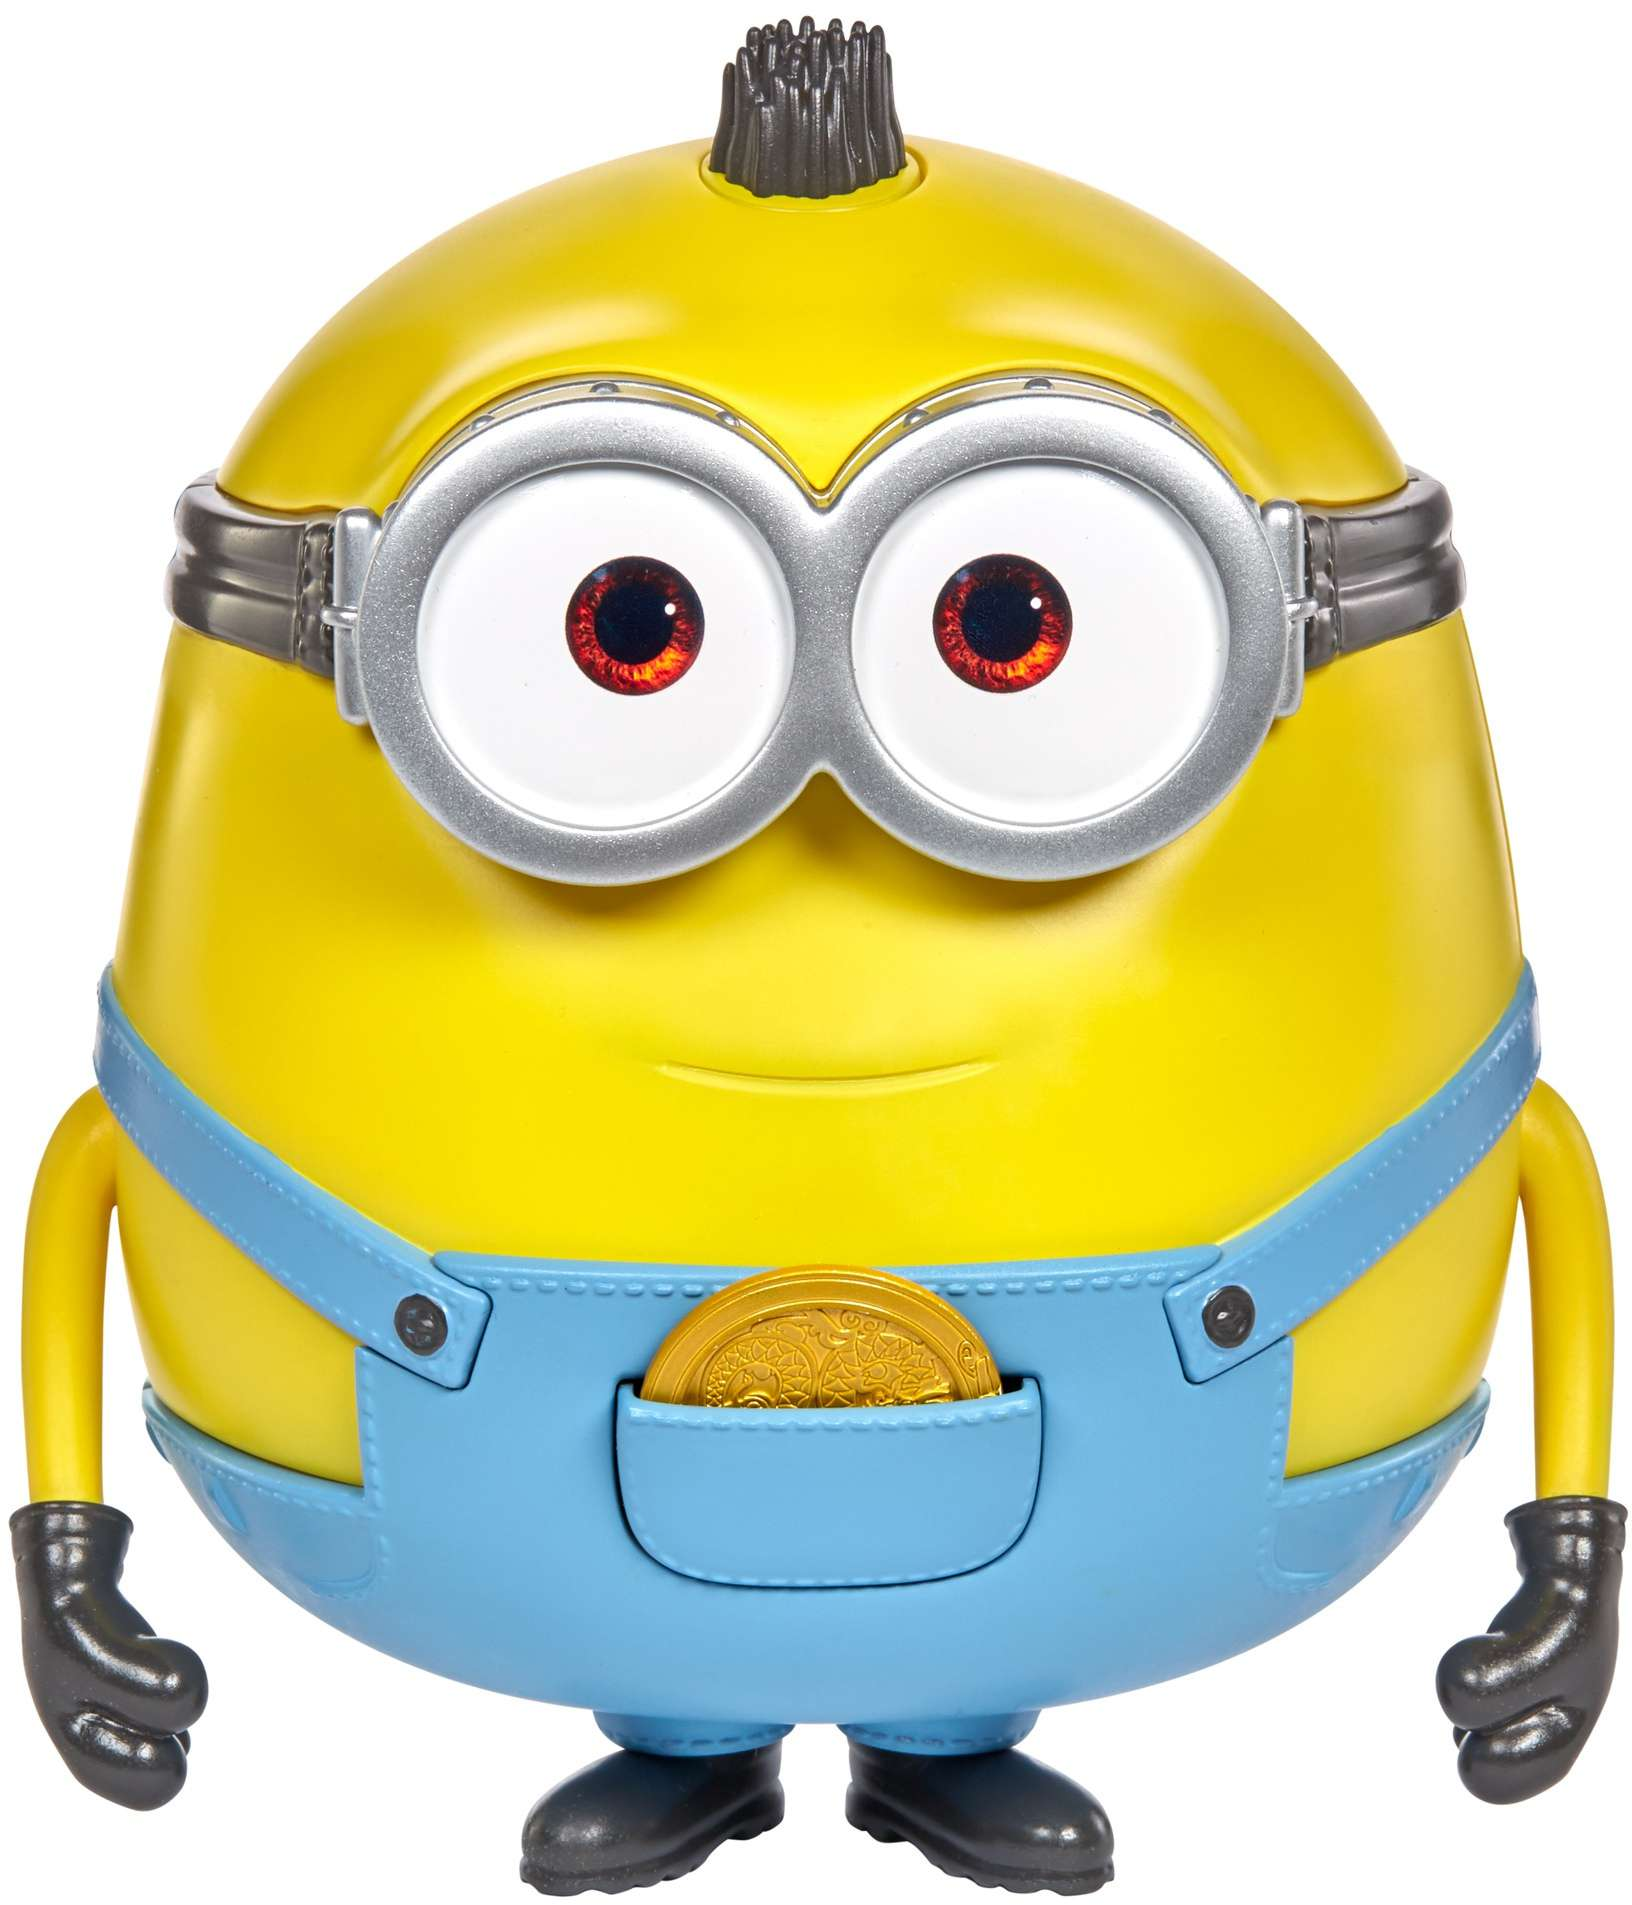 Minions: The Rise of Gru Babble Otto Large Interactive Toy For Kids Ages 4 Years & Up